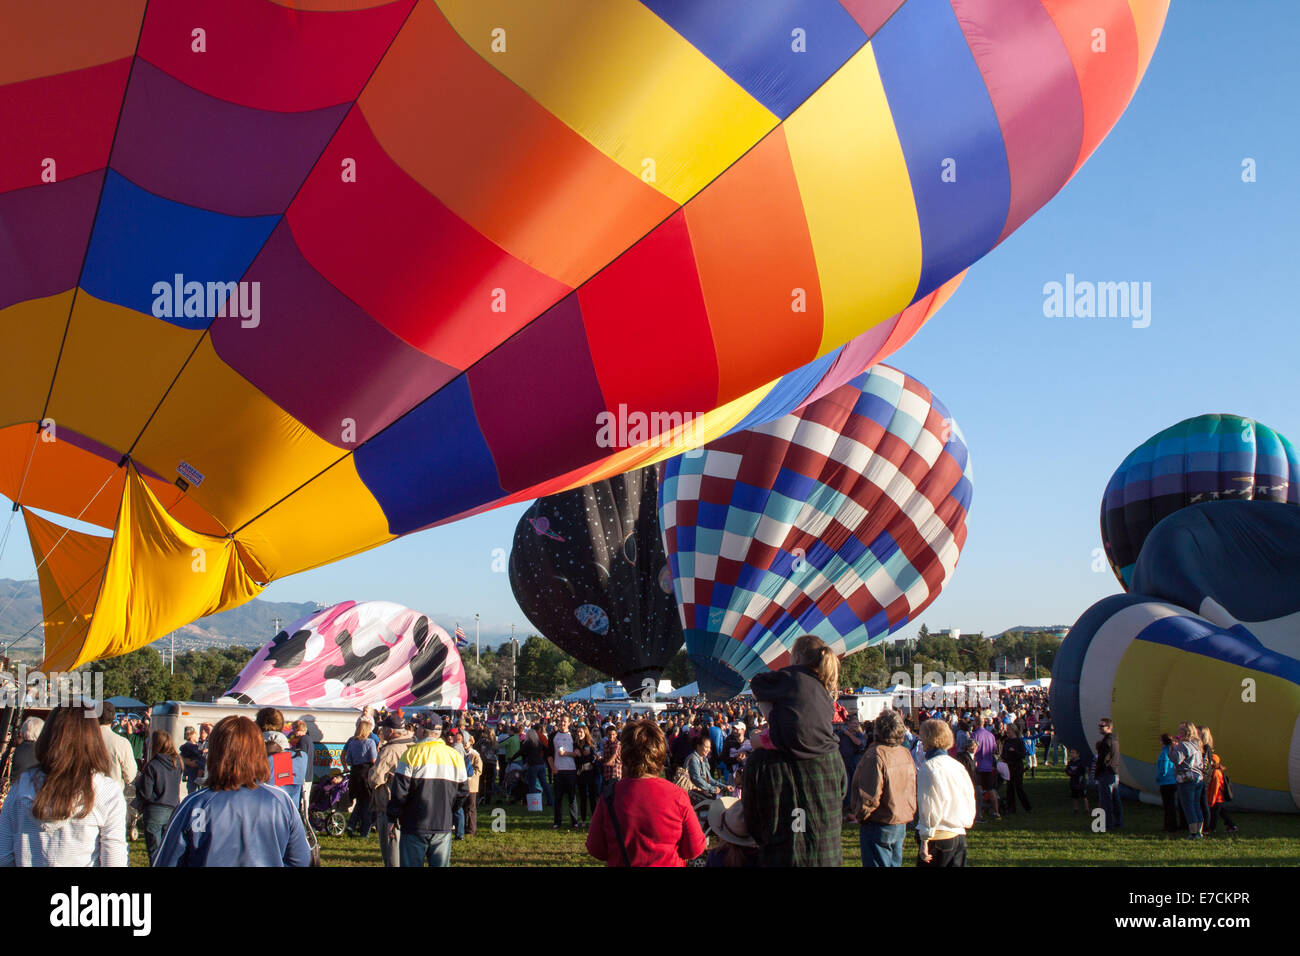 People watch as a colorful hot air balloons are inflated on the last day of the last scheduled Balloon Classic Stock Photo